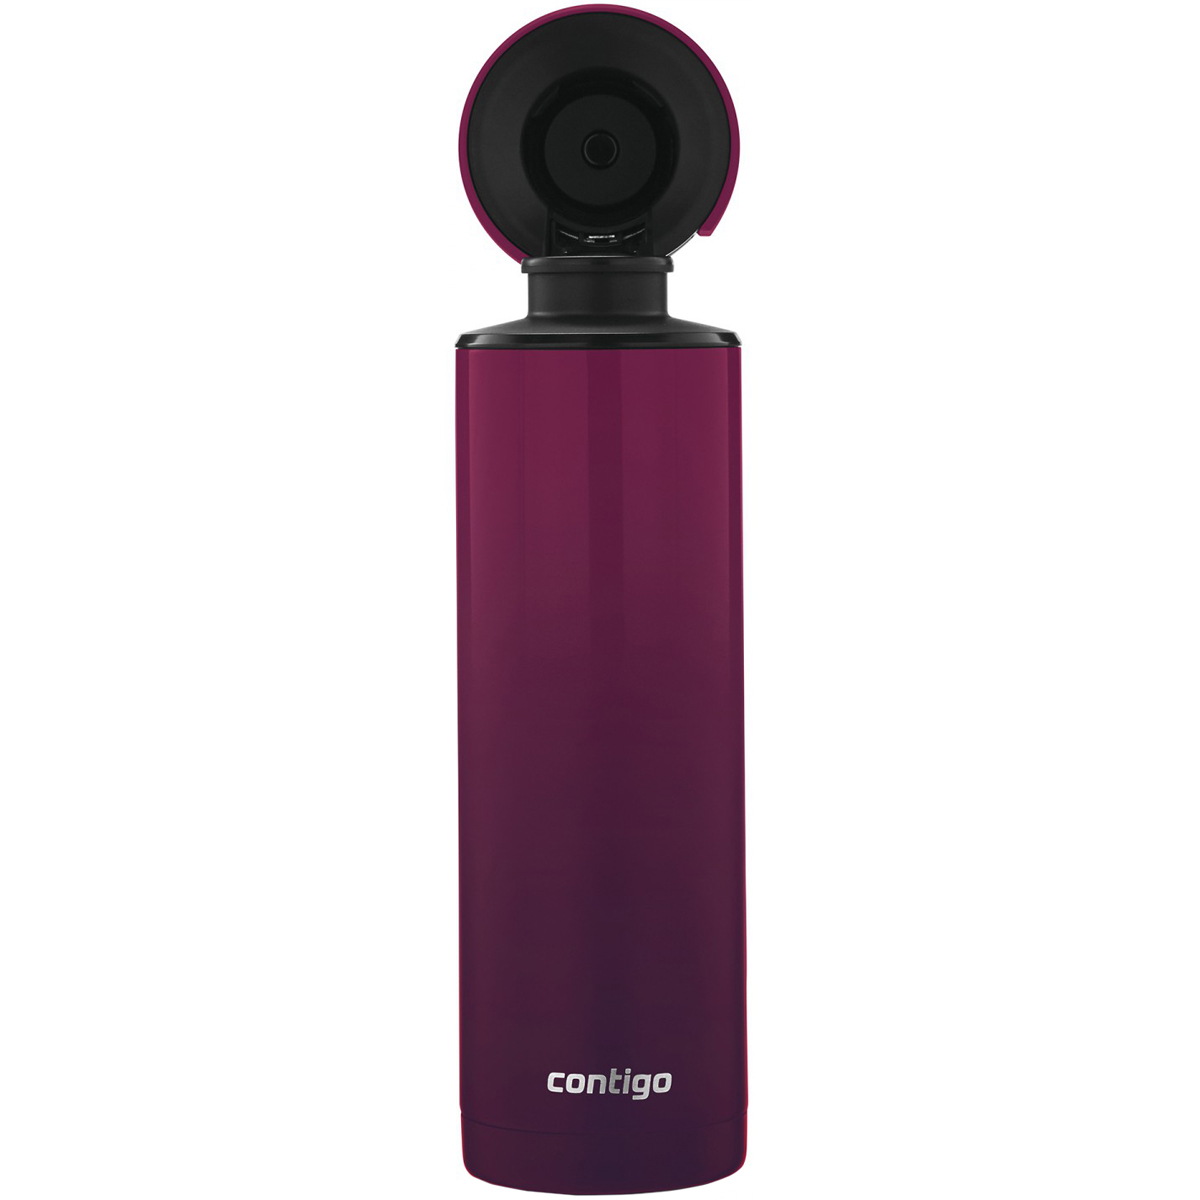 Contigo-24-oz-Evoke-Quick-Twist-Lid-Insulated-Stainless-Steel-Water-Bottle thumbnail 20